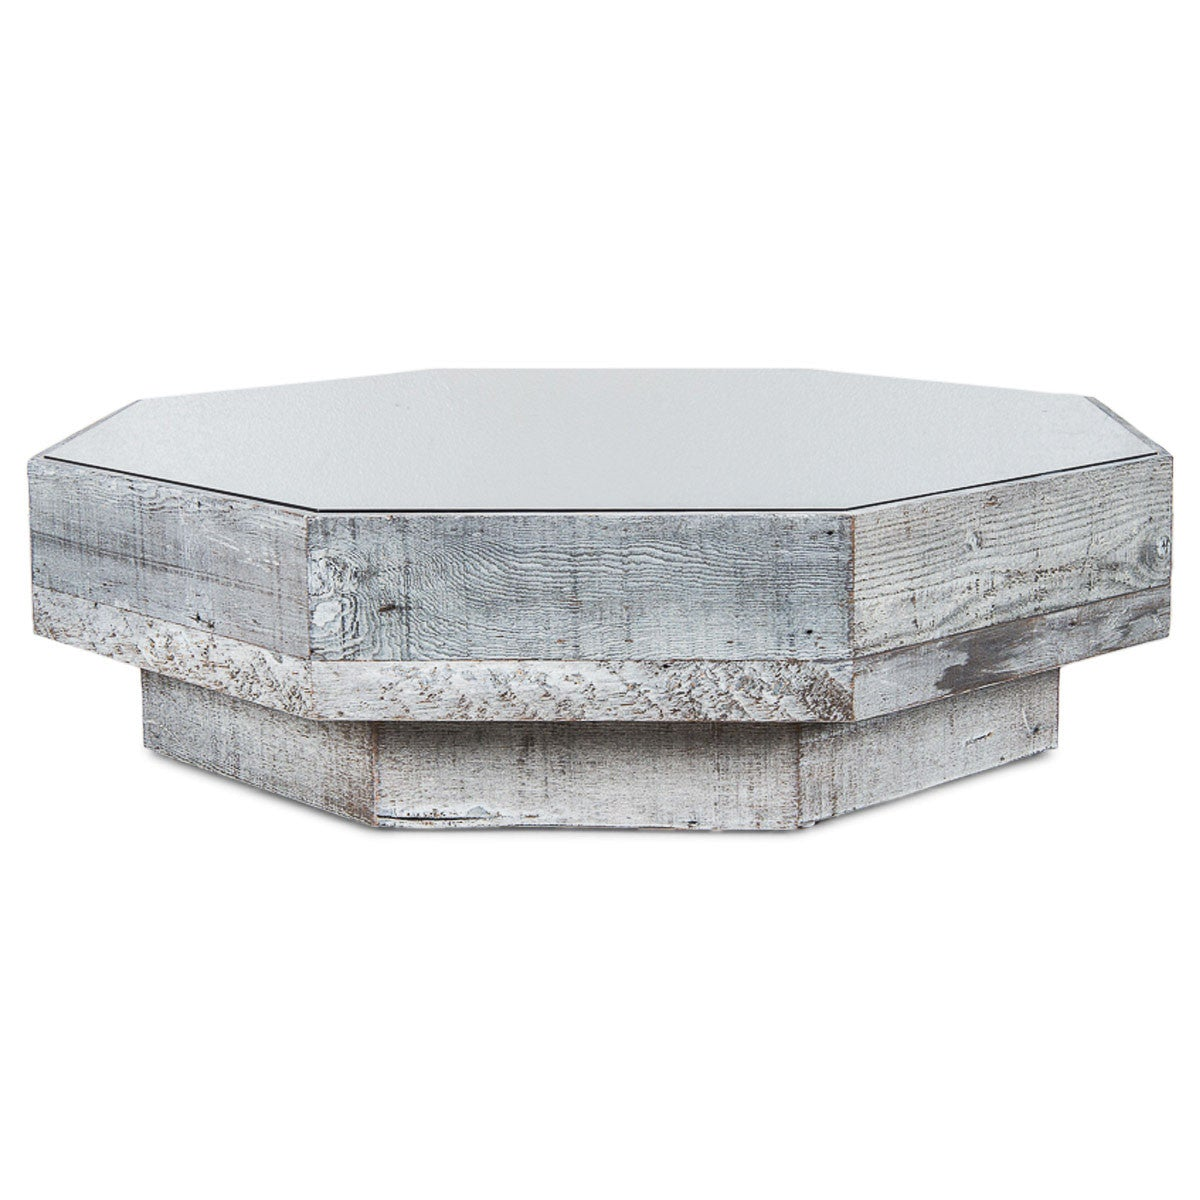 Attirant Recycled Wood/Grey Glass Octagon Coffee Table